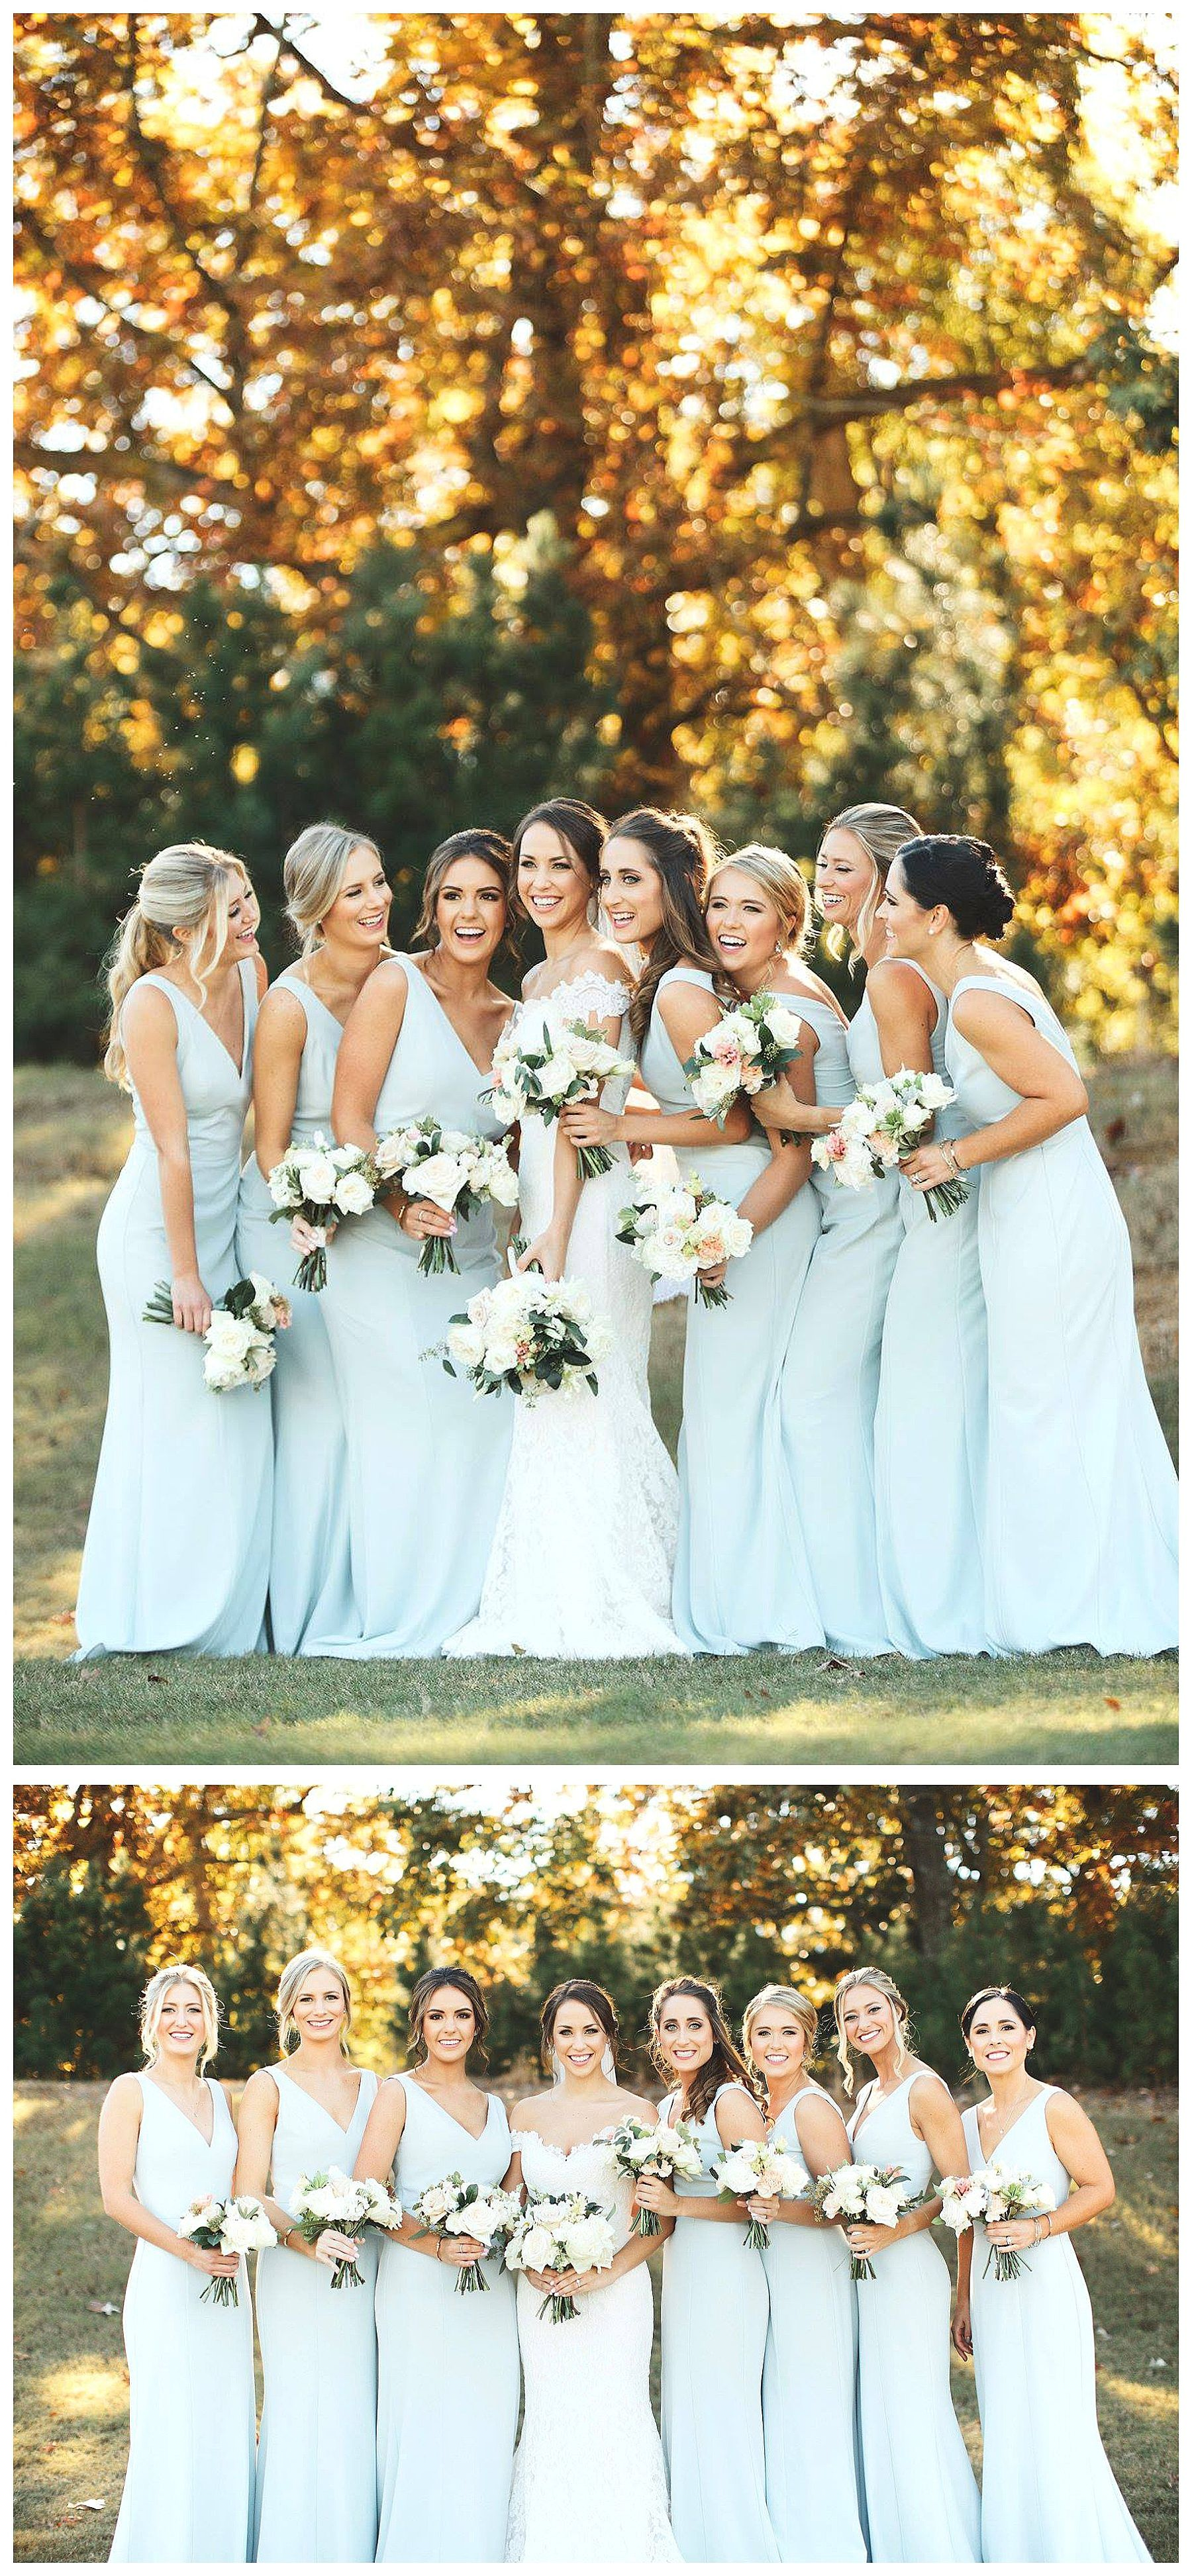 Destination Lake Wedding at Lake Lanier Islands. Light Blue Bridesmaids dresses with stunning white and green bridesmaids bouquets by Wrennwood Design. #weddingbridesmaidbouquets